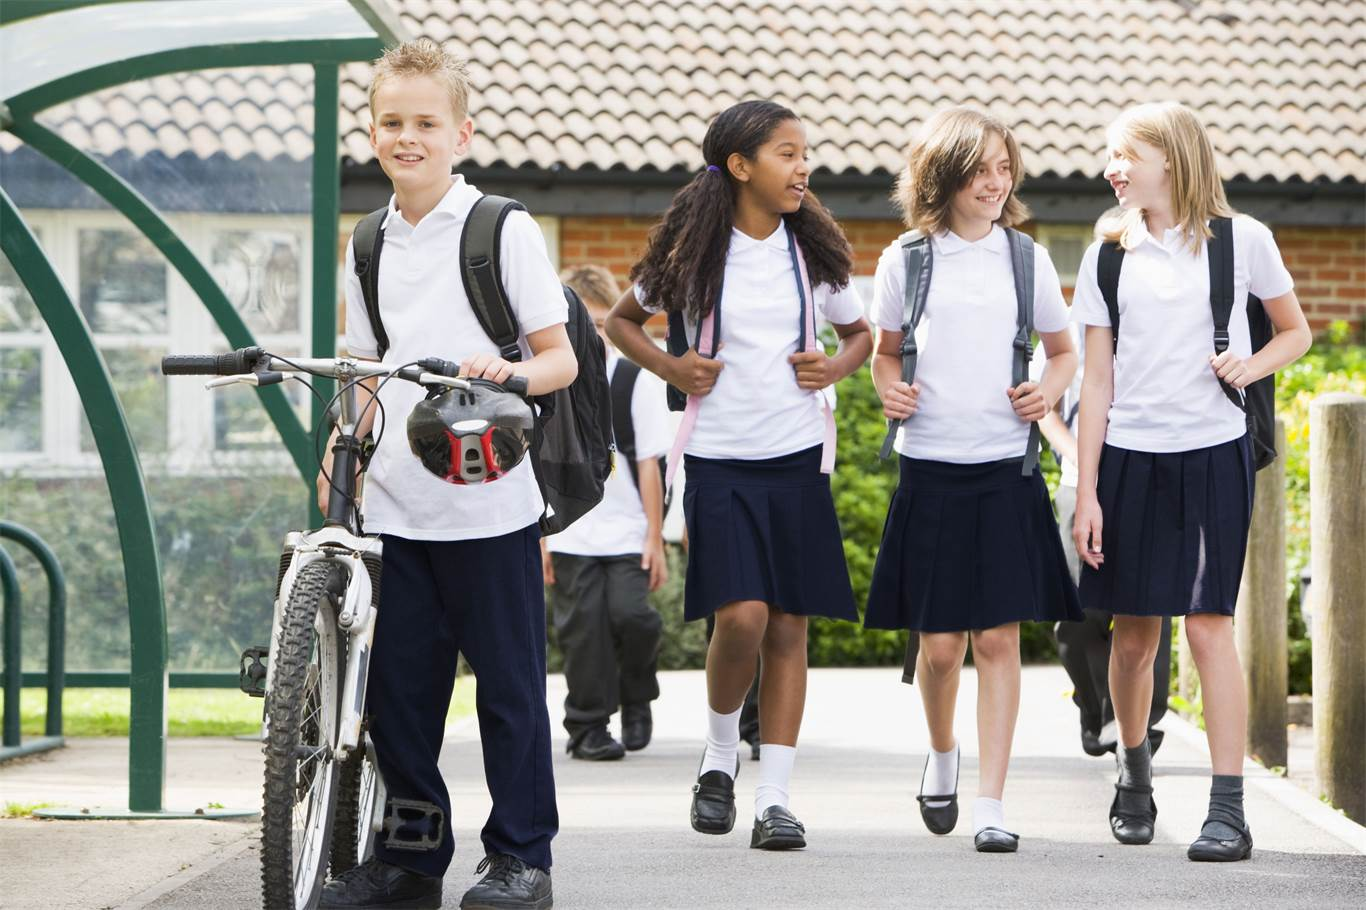 boarding school is an advantage over day school Boarding schools or day schools are better is based on the individual student some are well adjusted and can handle more responsibly could do well in boarding school.